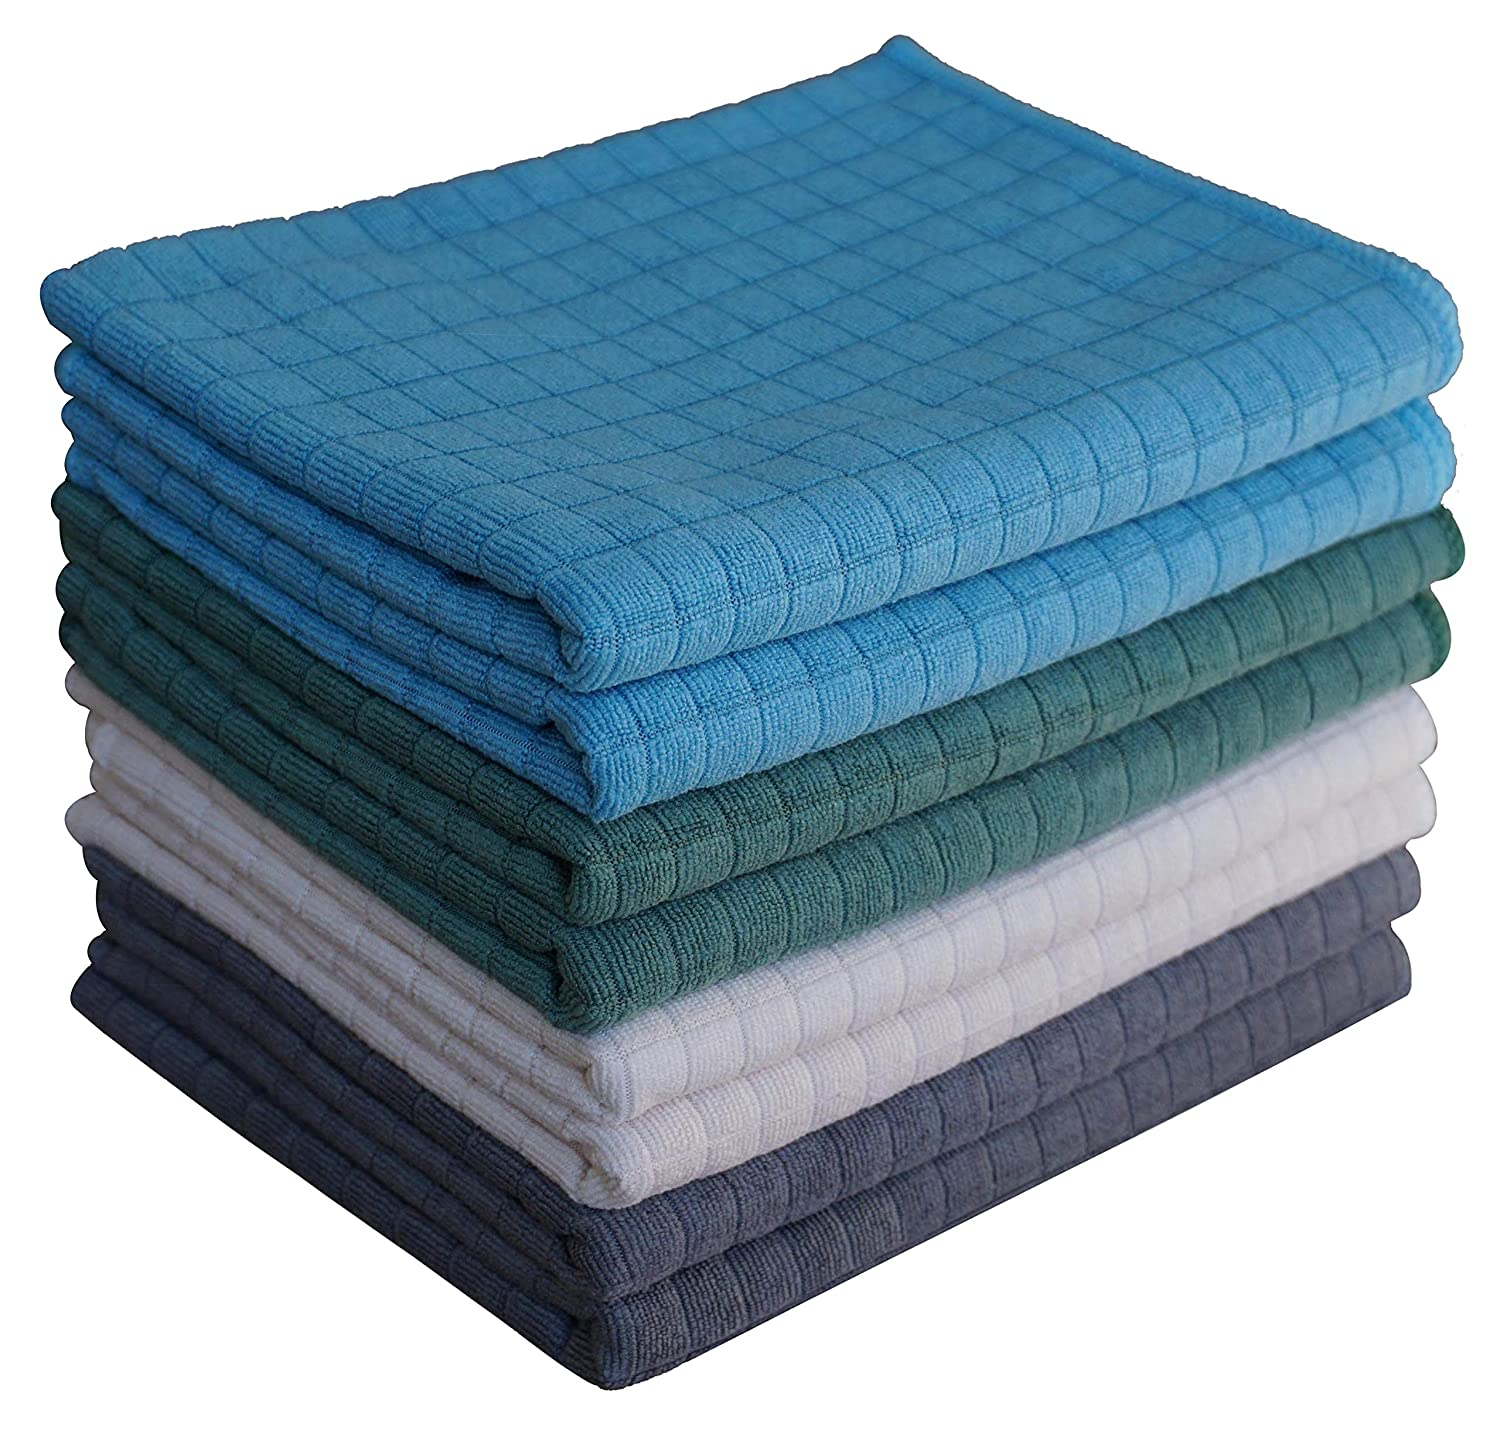 Gryeer Assorted Color Microfiber Dish Towels - 8 Pack (2 Gray, 2 Blue, 2  Green, 2 Beige) - Soft, Super Absorbent and Lint Free Kitchen Towels, 26 x  18 ...